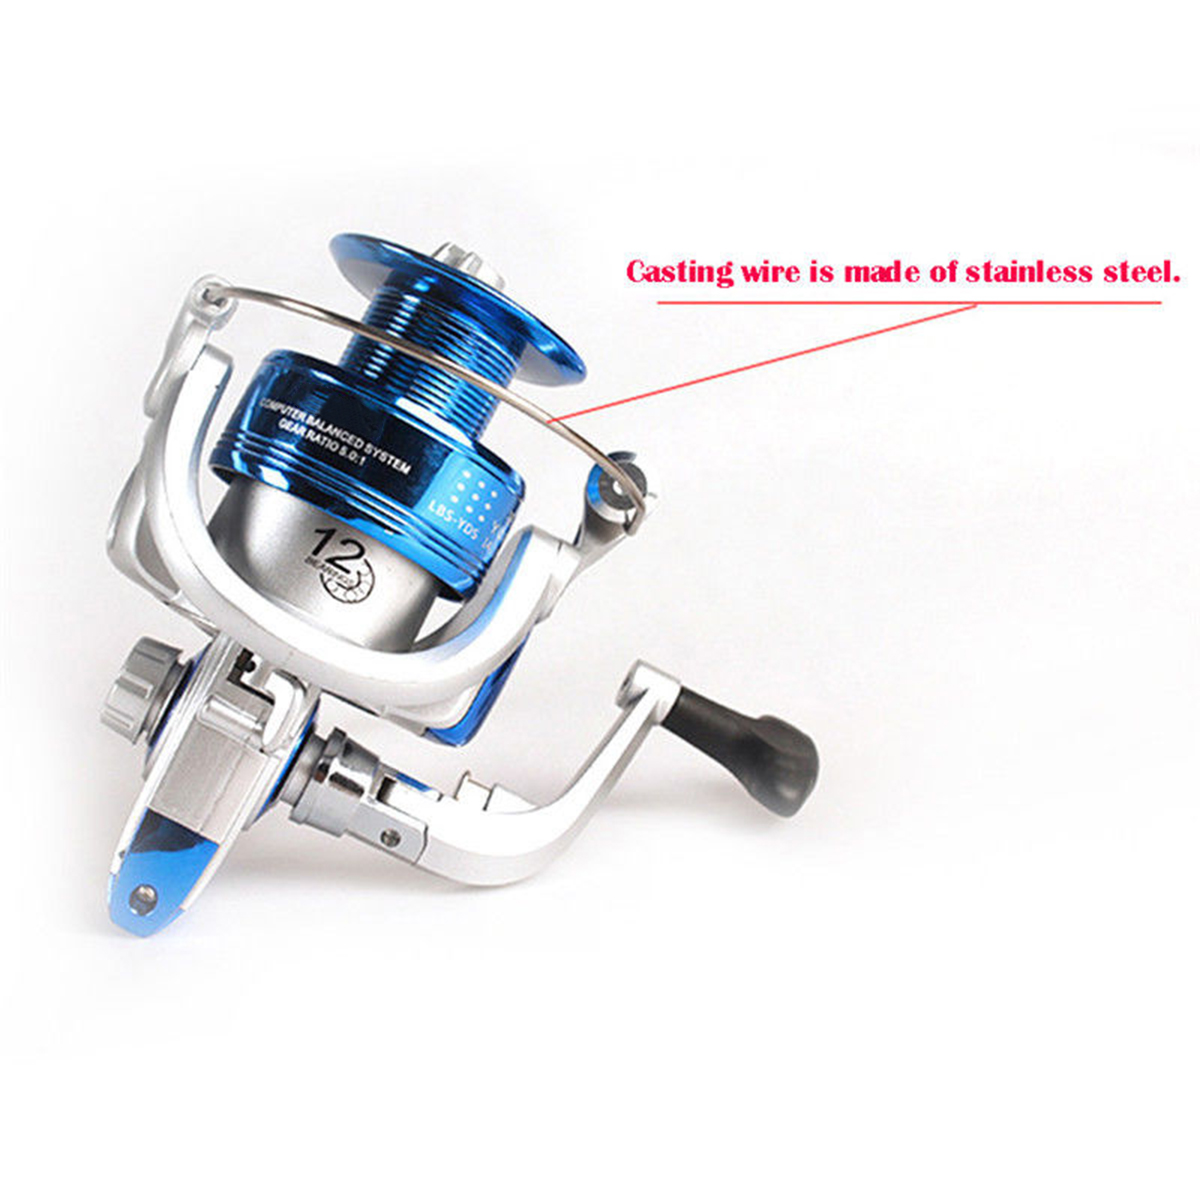 ZANLURE CF1000-7000 5.2:1 12BB Metal Spinning Fishing Reel Saltwater Freshwater Fishing Wheel